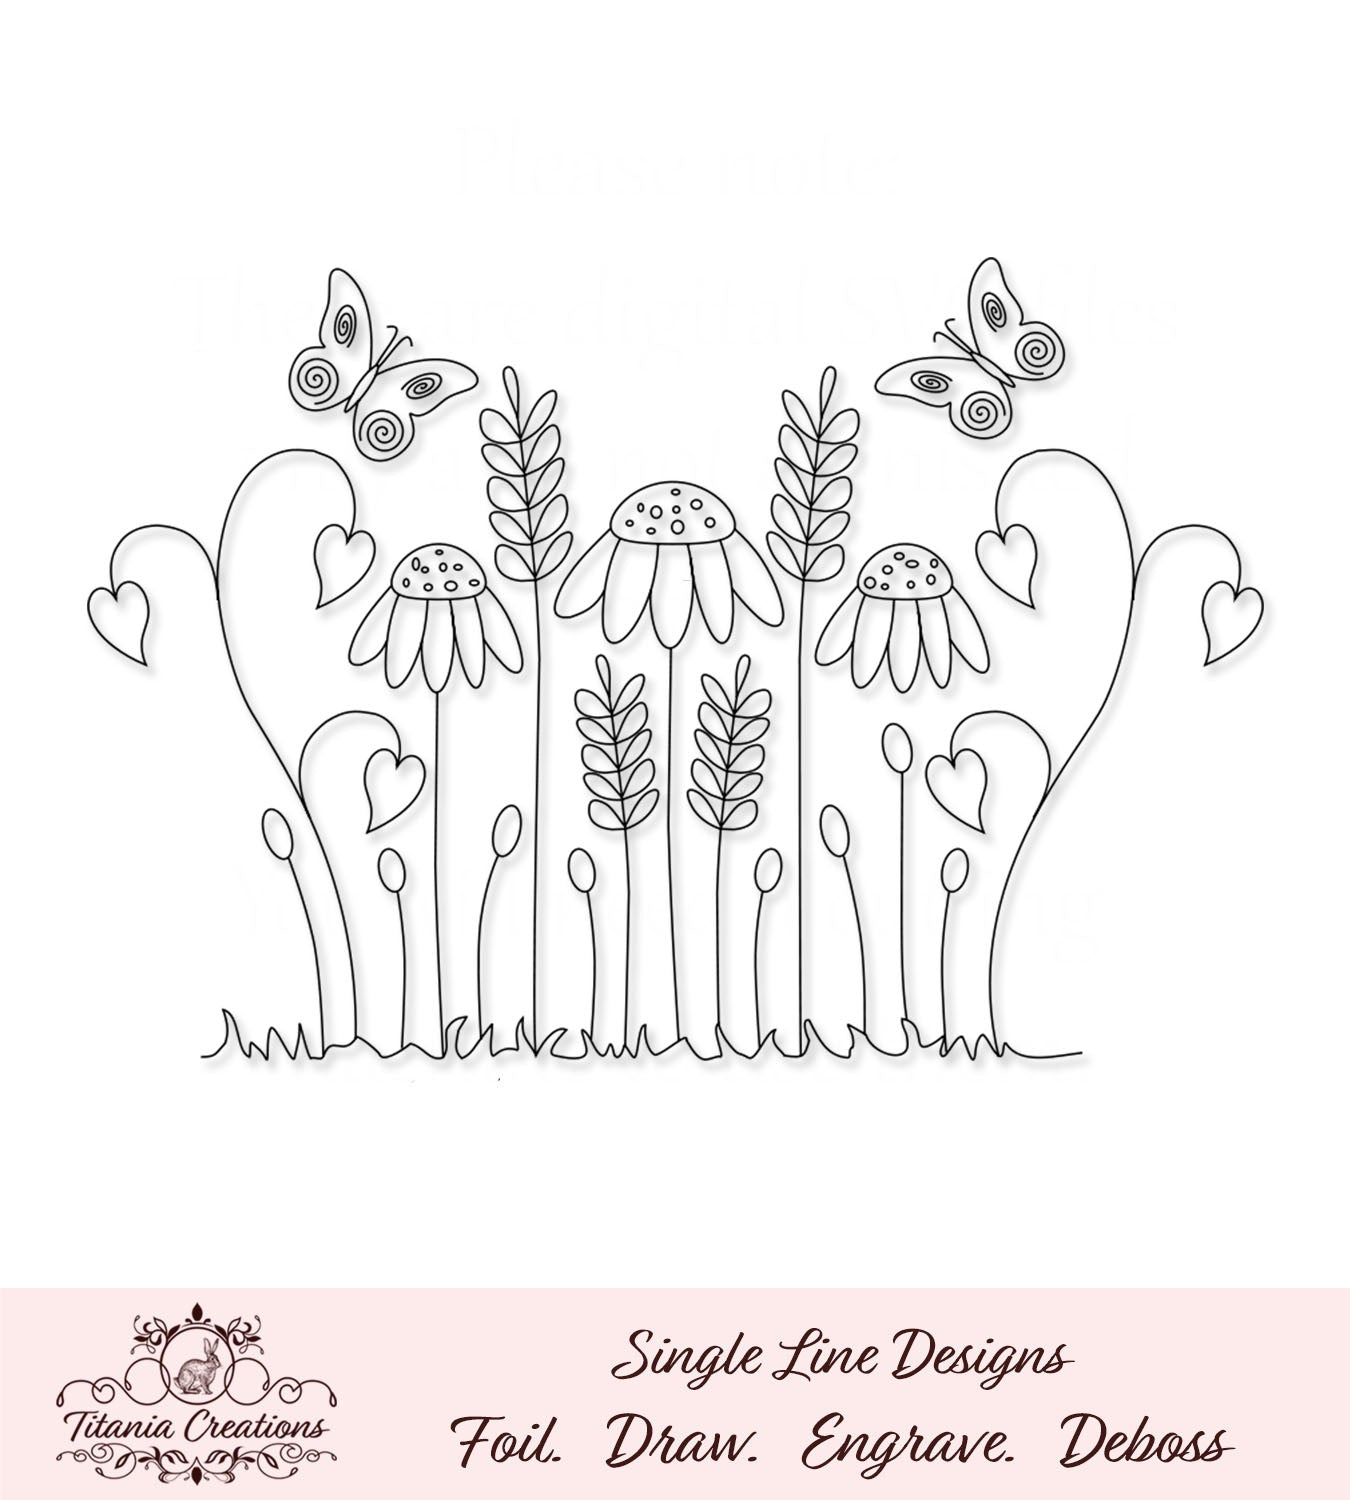 Single Line Butterflies and Flowers Foil Quill SVG